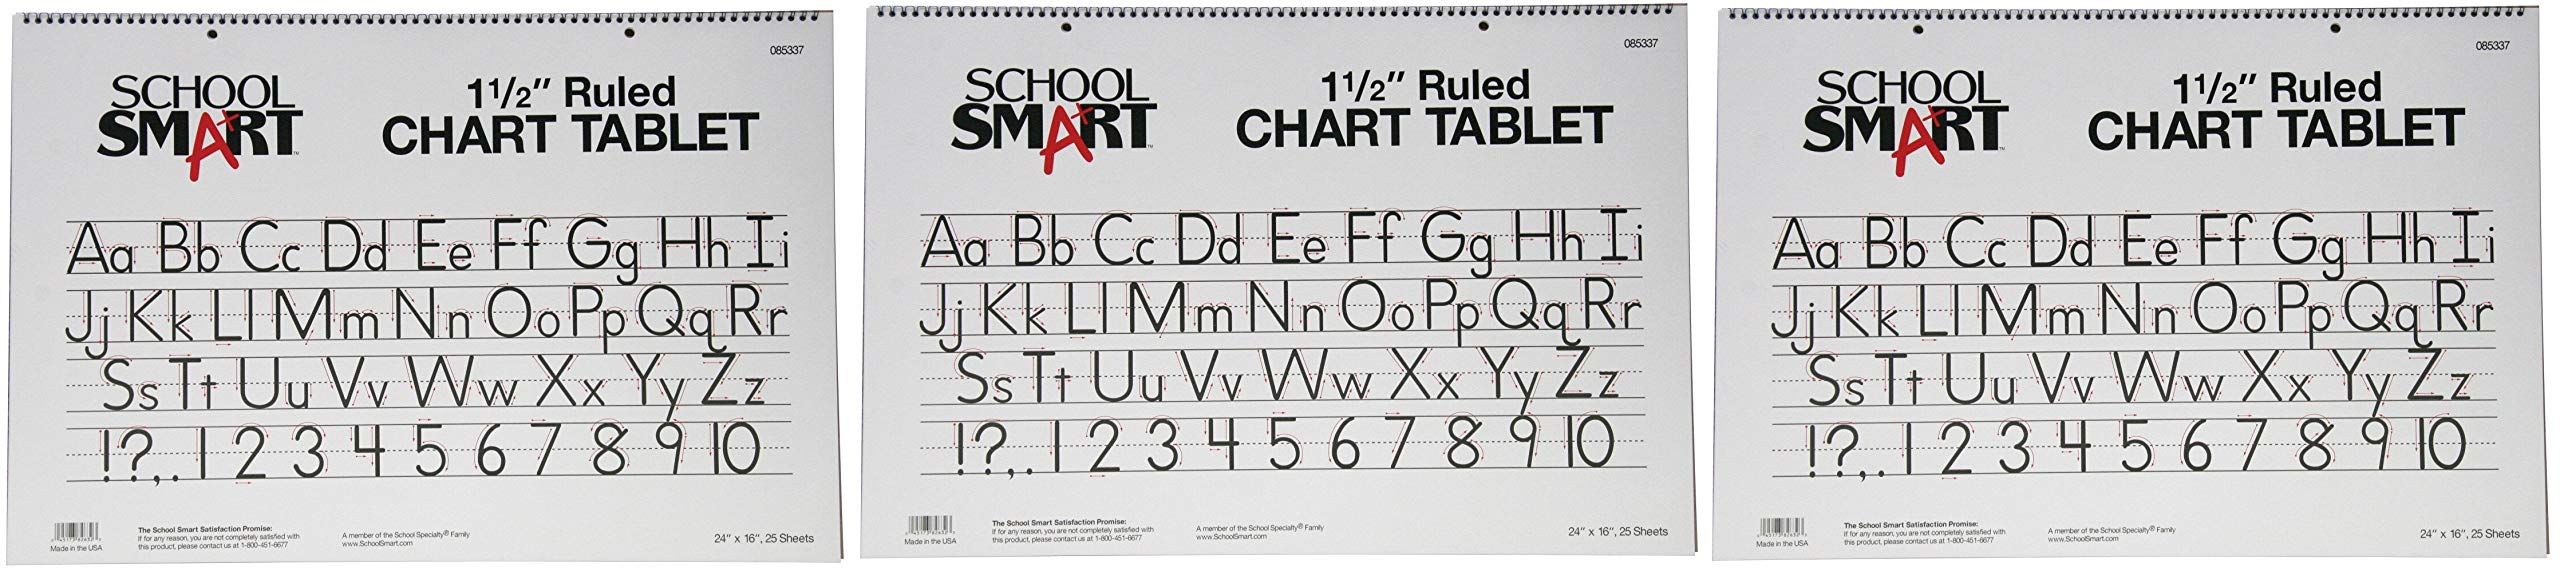 School Smart Chart Tablet, 24 x 16 Inches, 1-1/2 Inch Skip Line, 25 Sheets (3-(Pack))